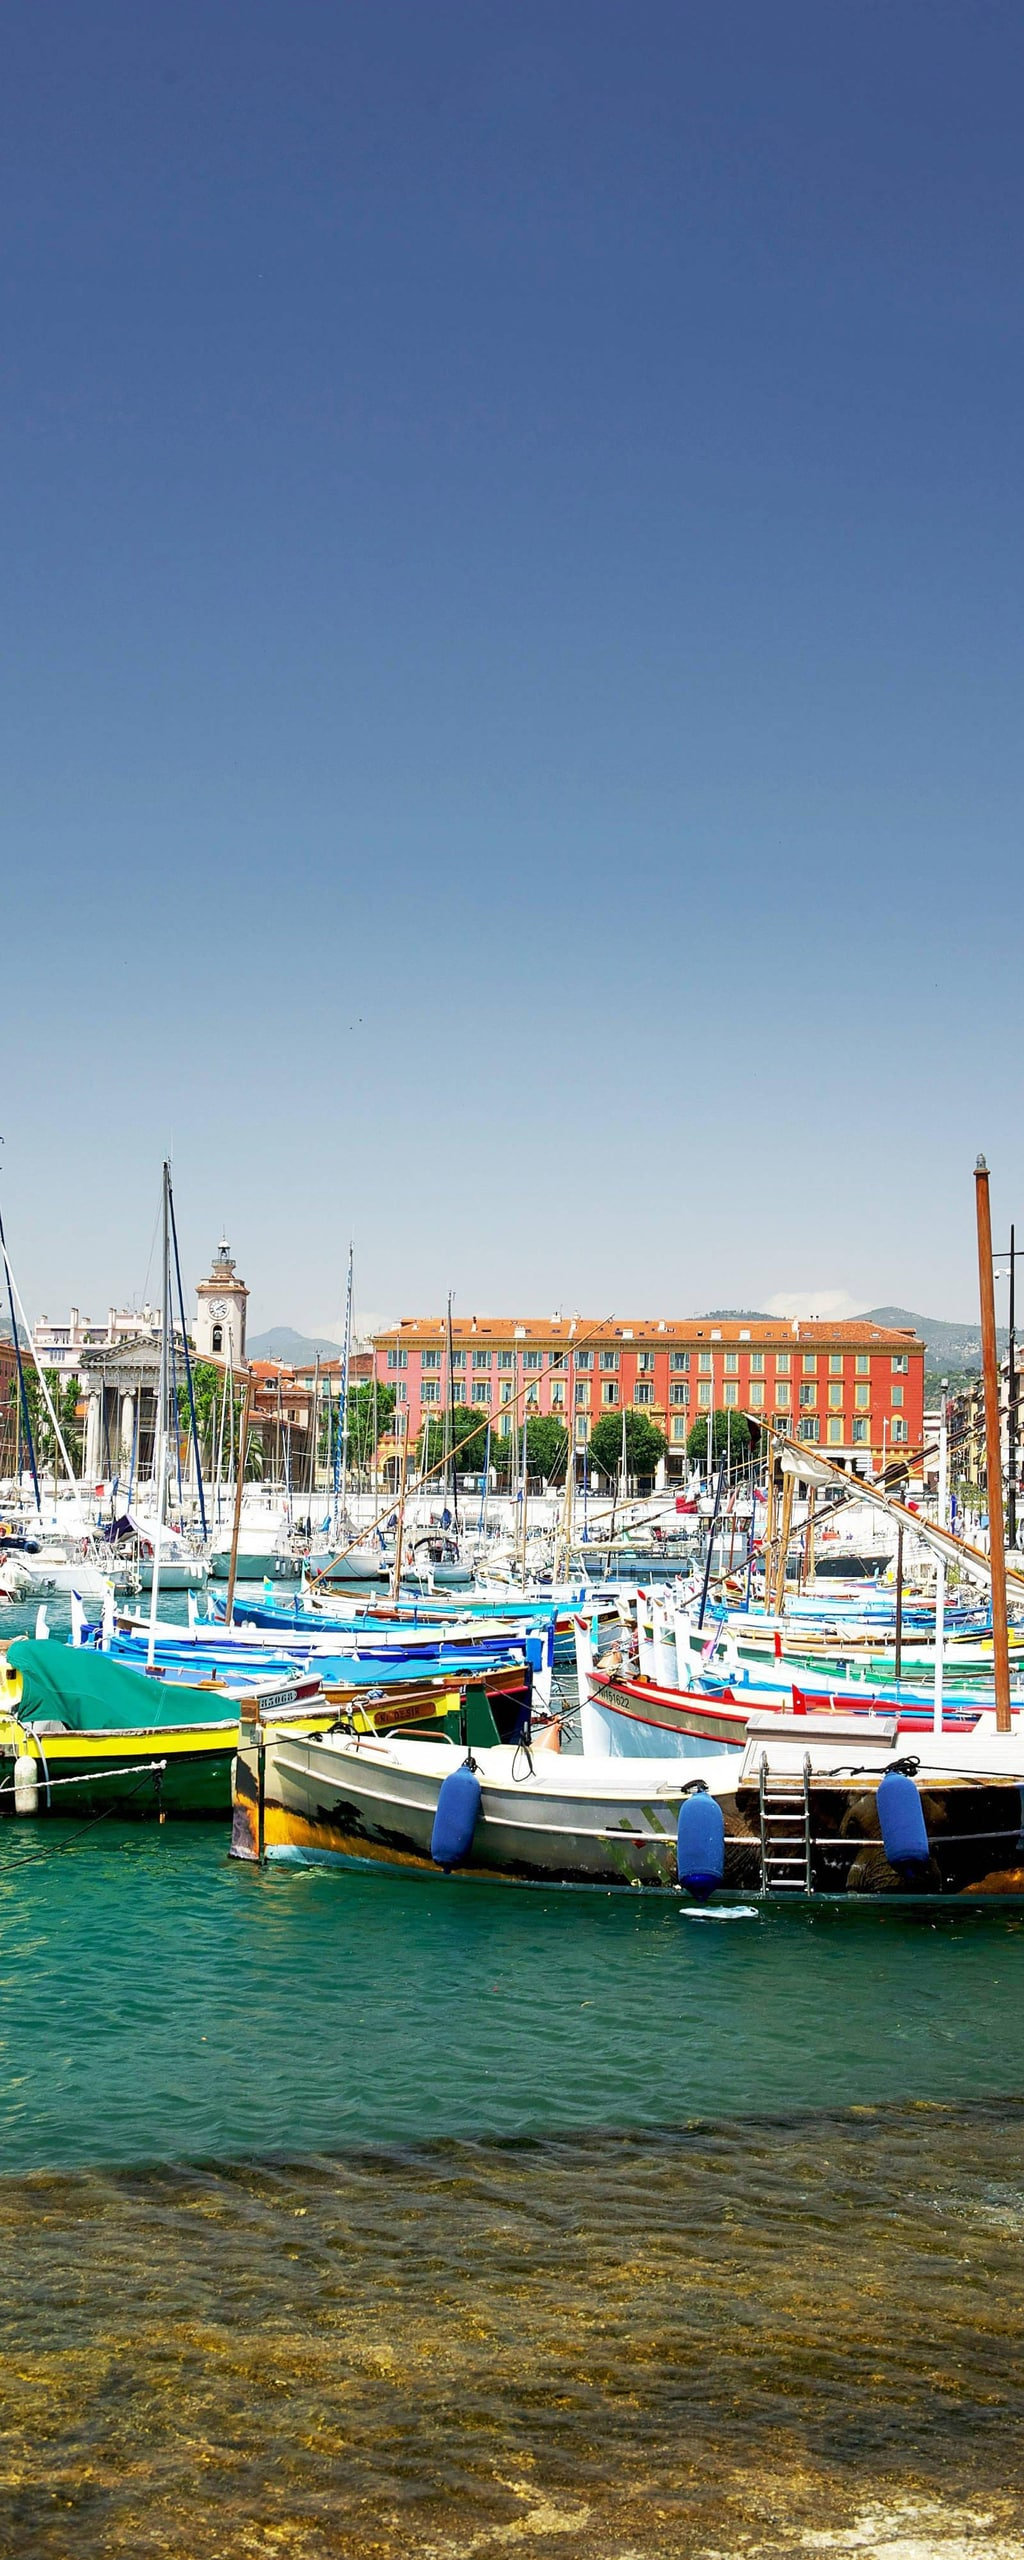 Nizza Hafen, Hafen in Nizza